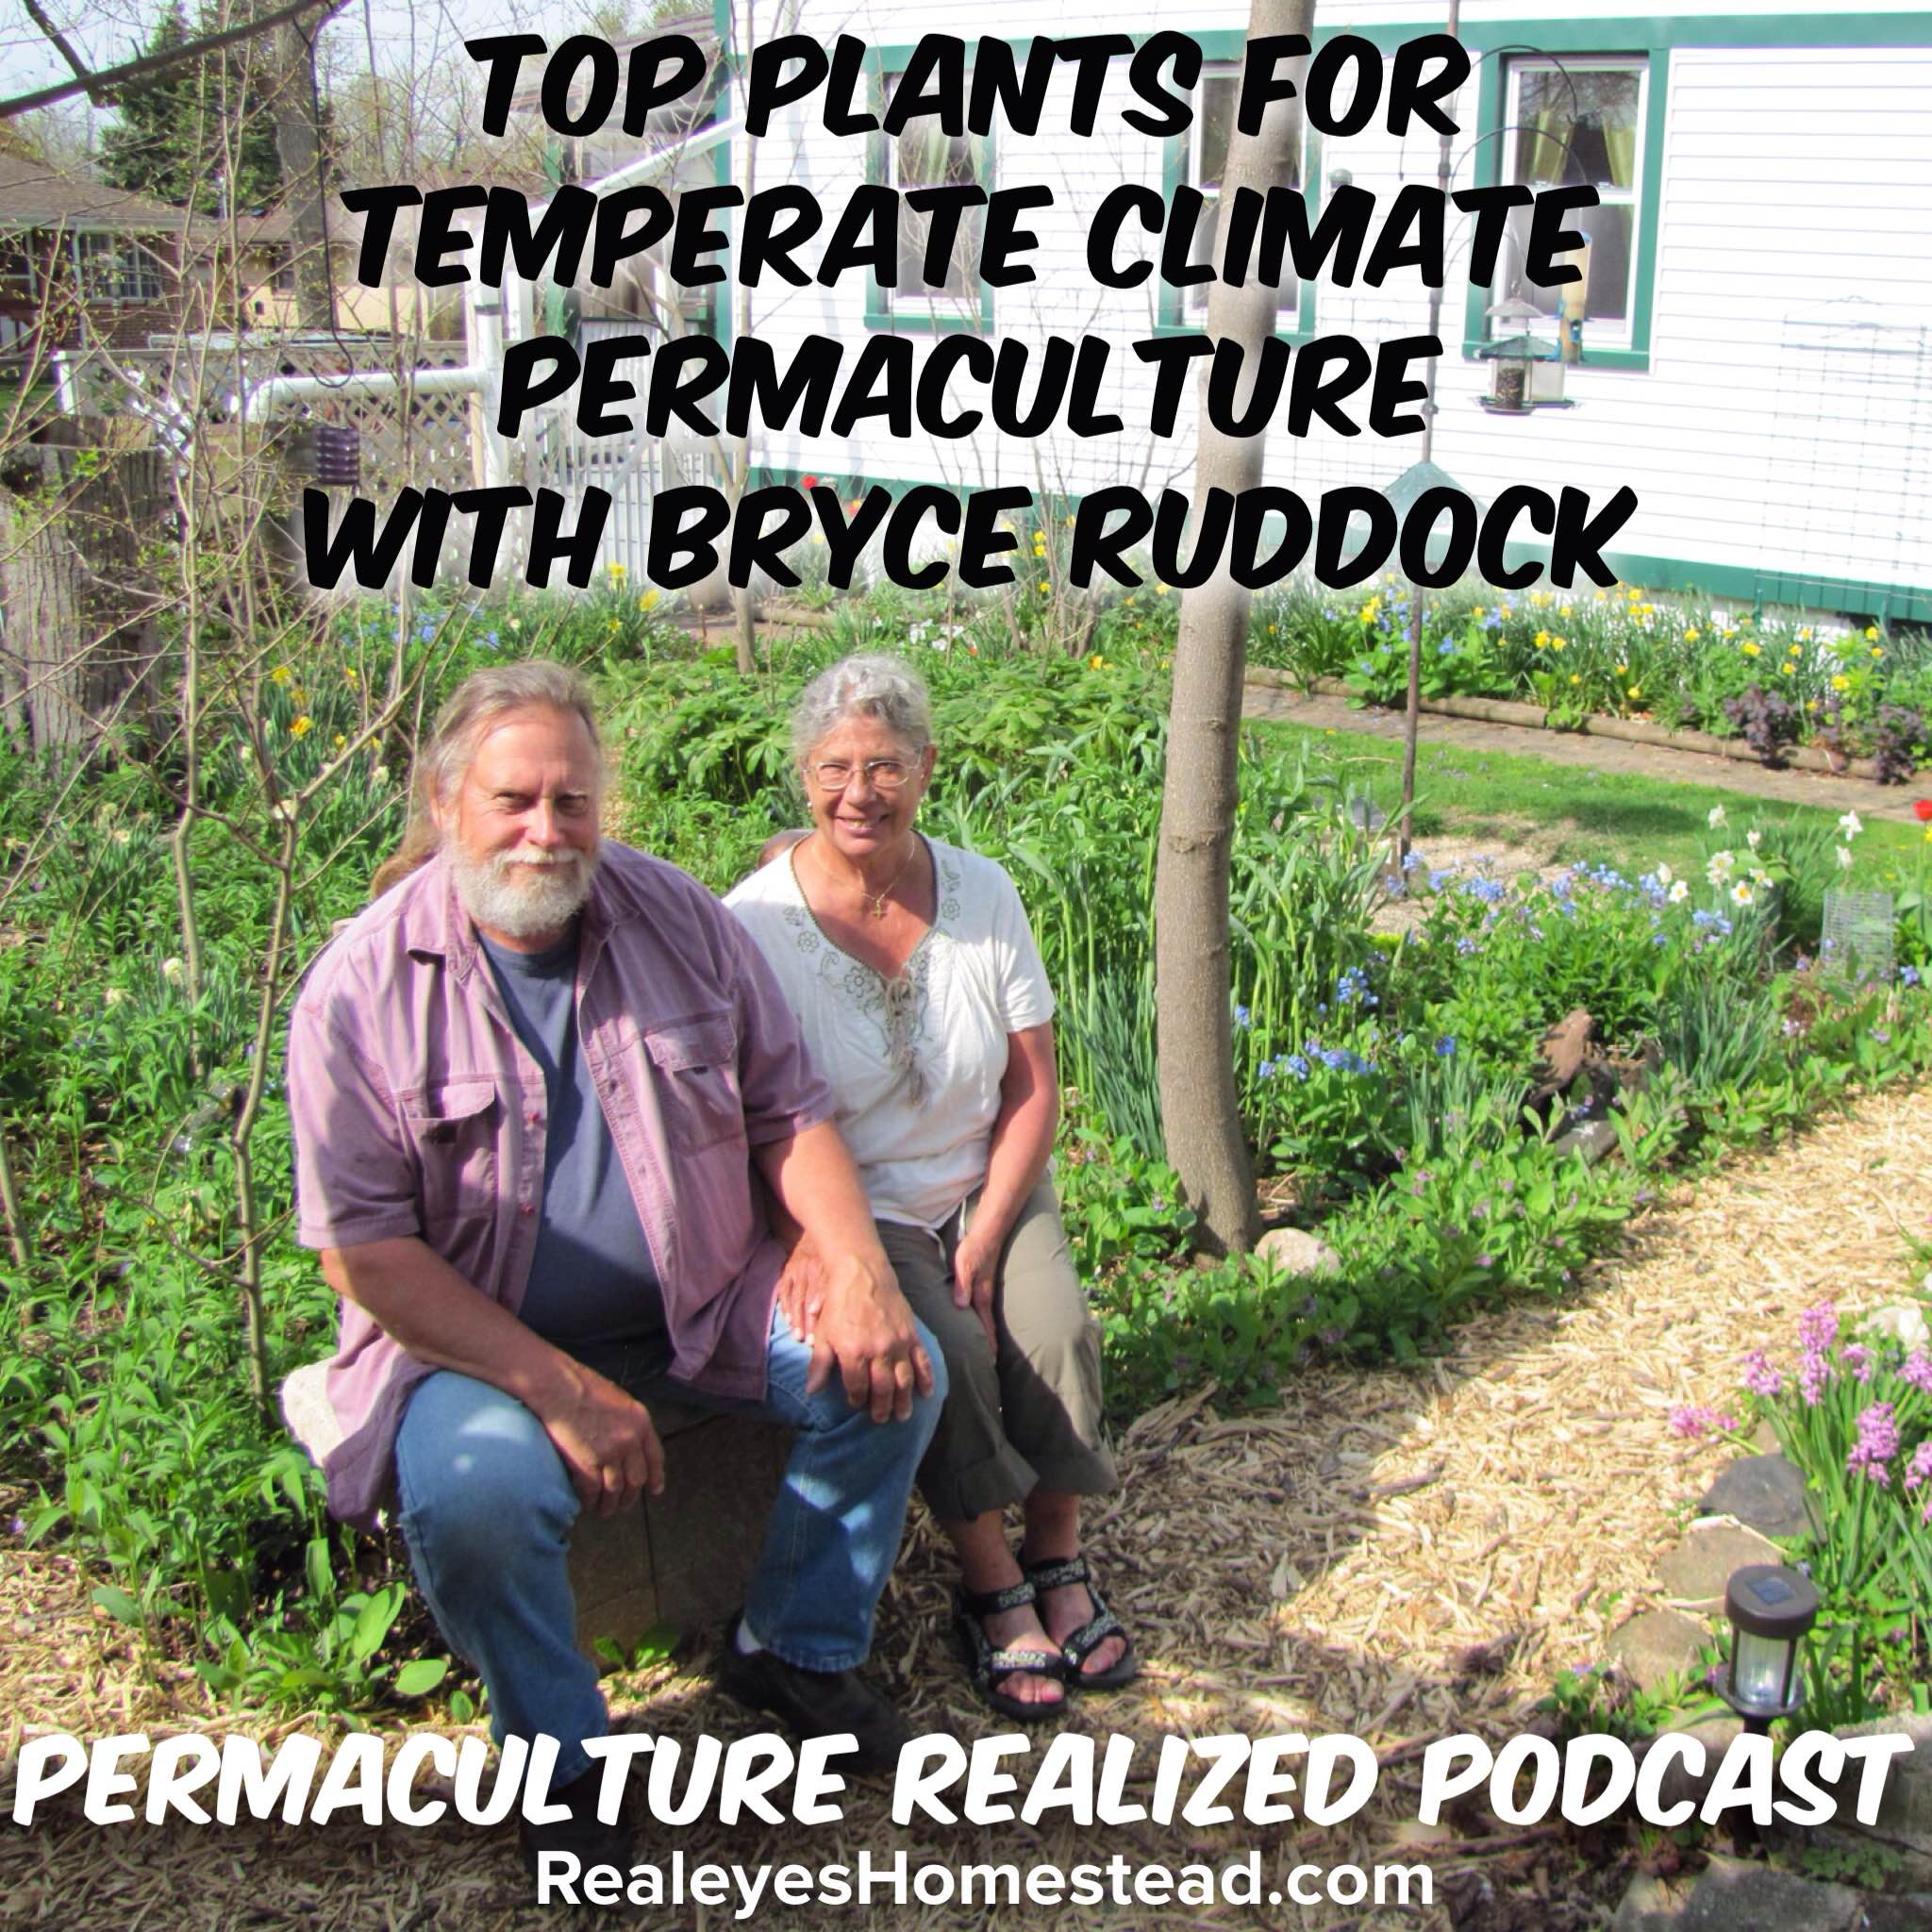 Permaculture Realized Podcast Episode 31, Top Plants for Temperate Climate Permaculture with Bryce Ruddock